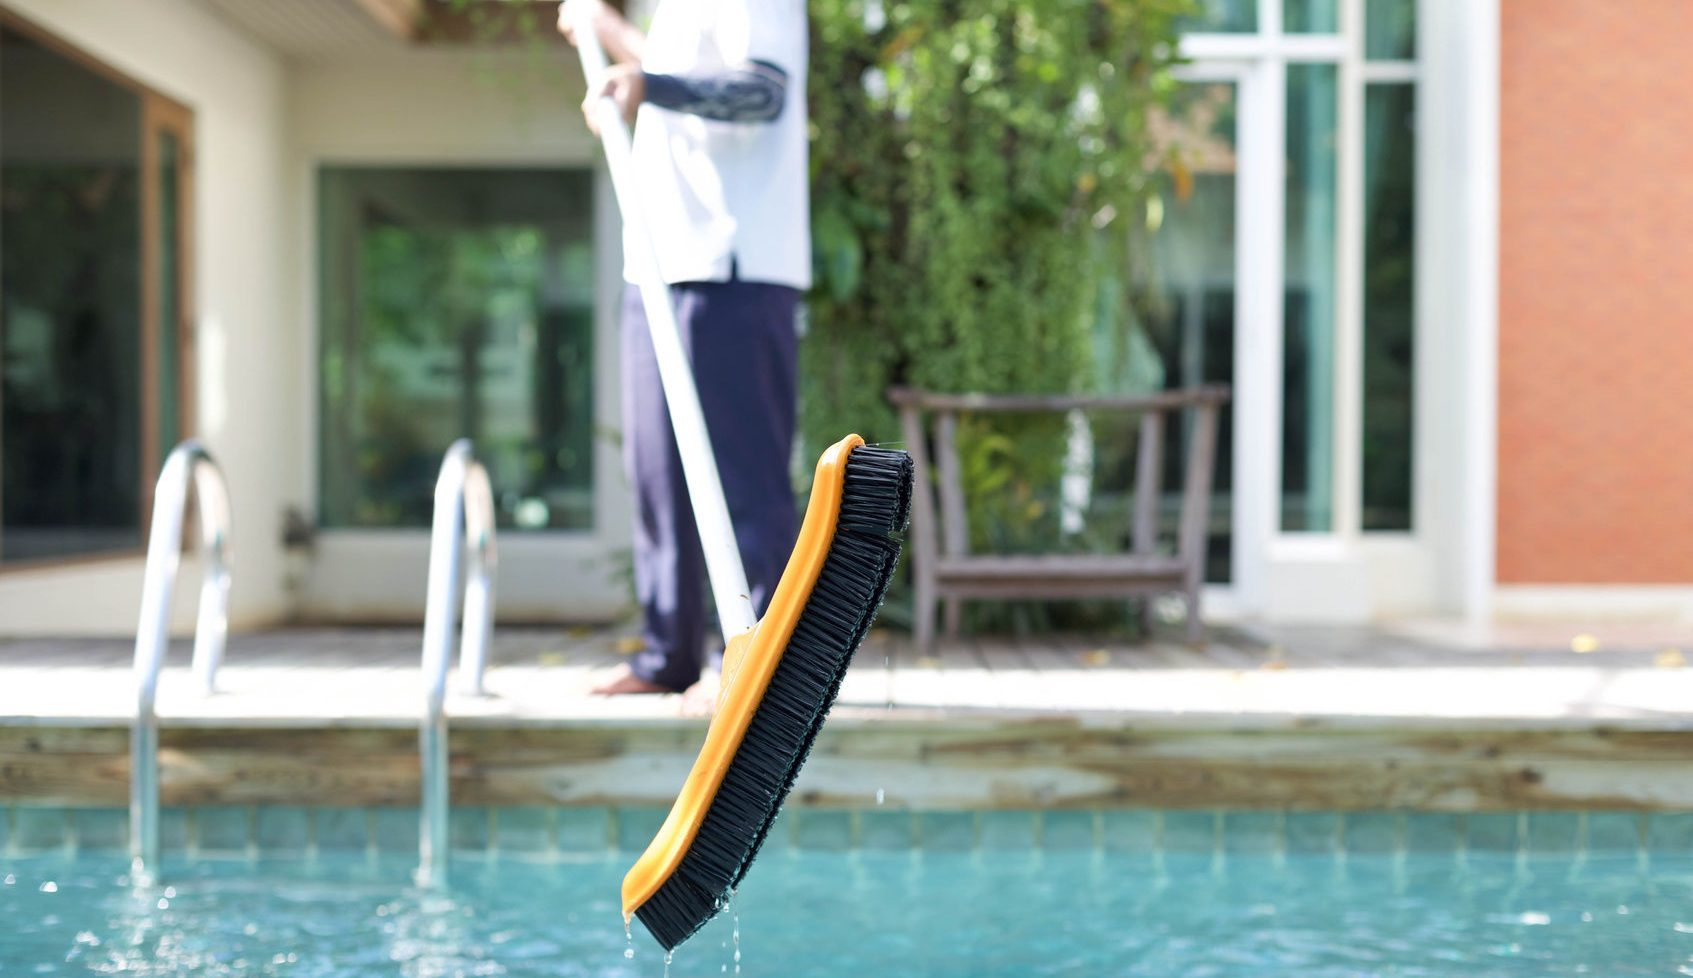 cleaning a swimming pool with a brush in summer time